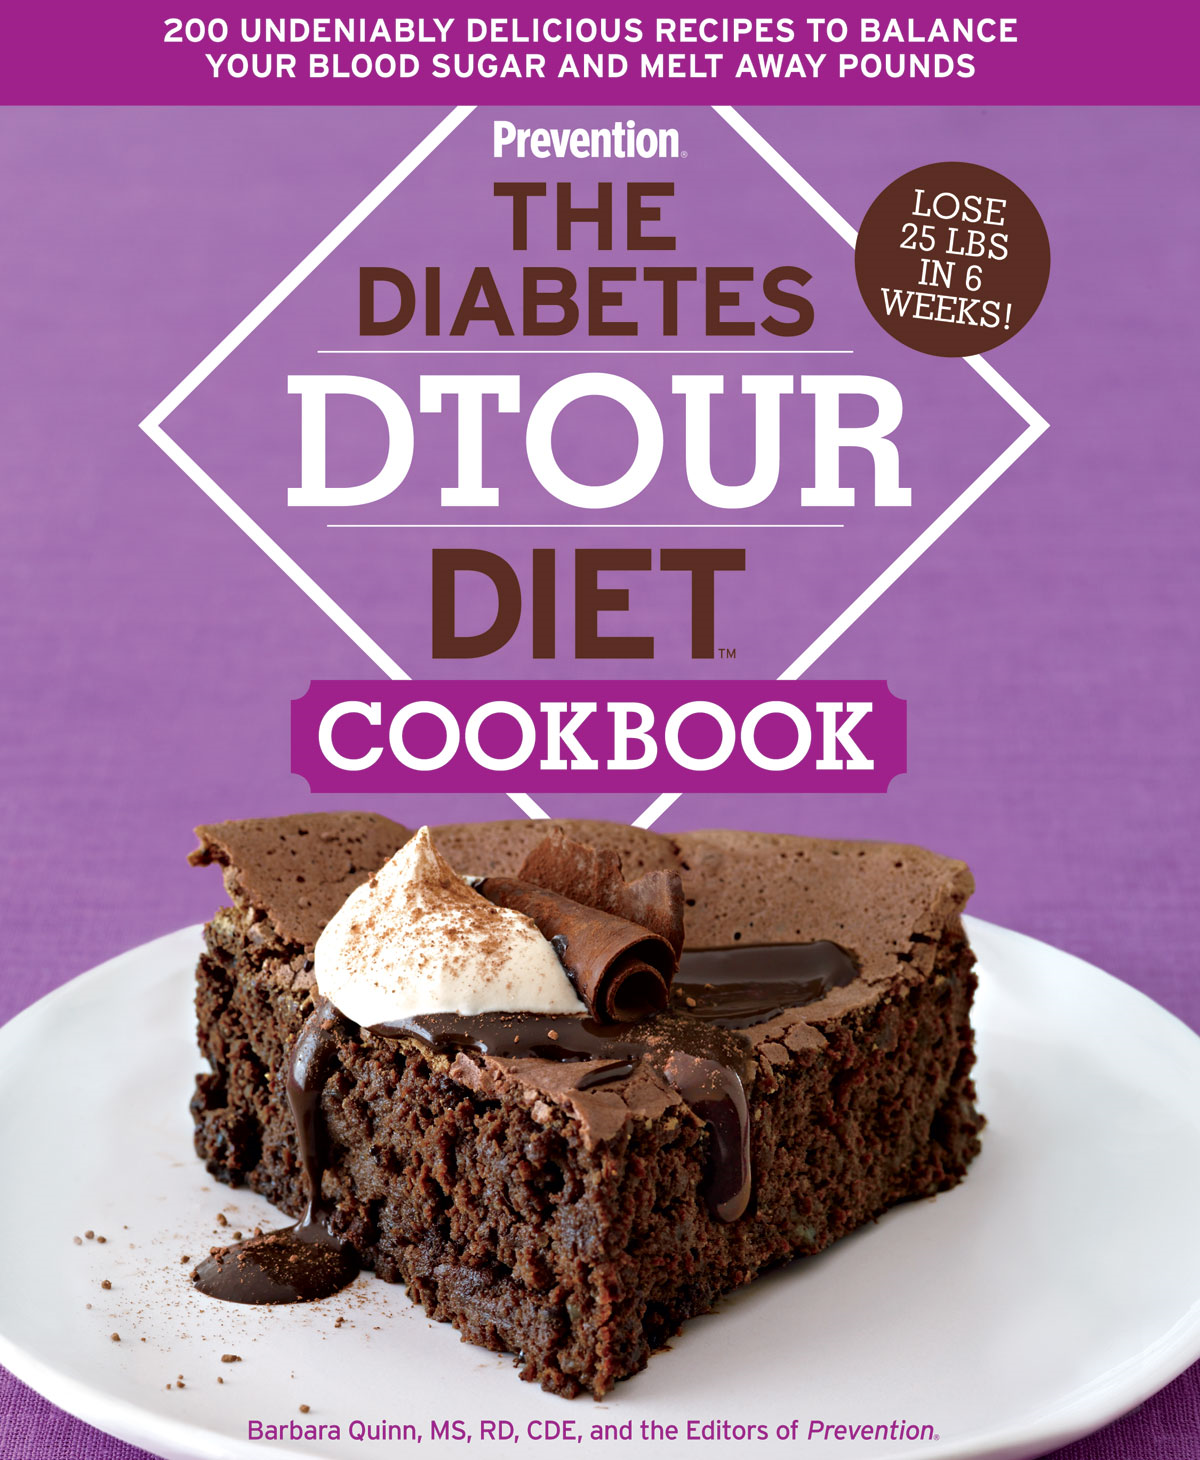 Diabetes DTOUR Diet Cookbook: 200 Undeniably Delicious Recipes to Balance Your Blood Sugar and Melt Away Pounds